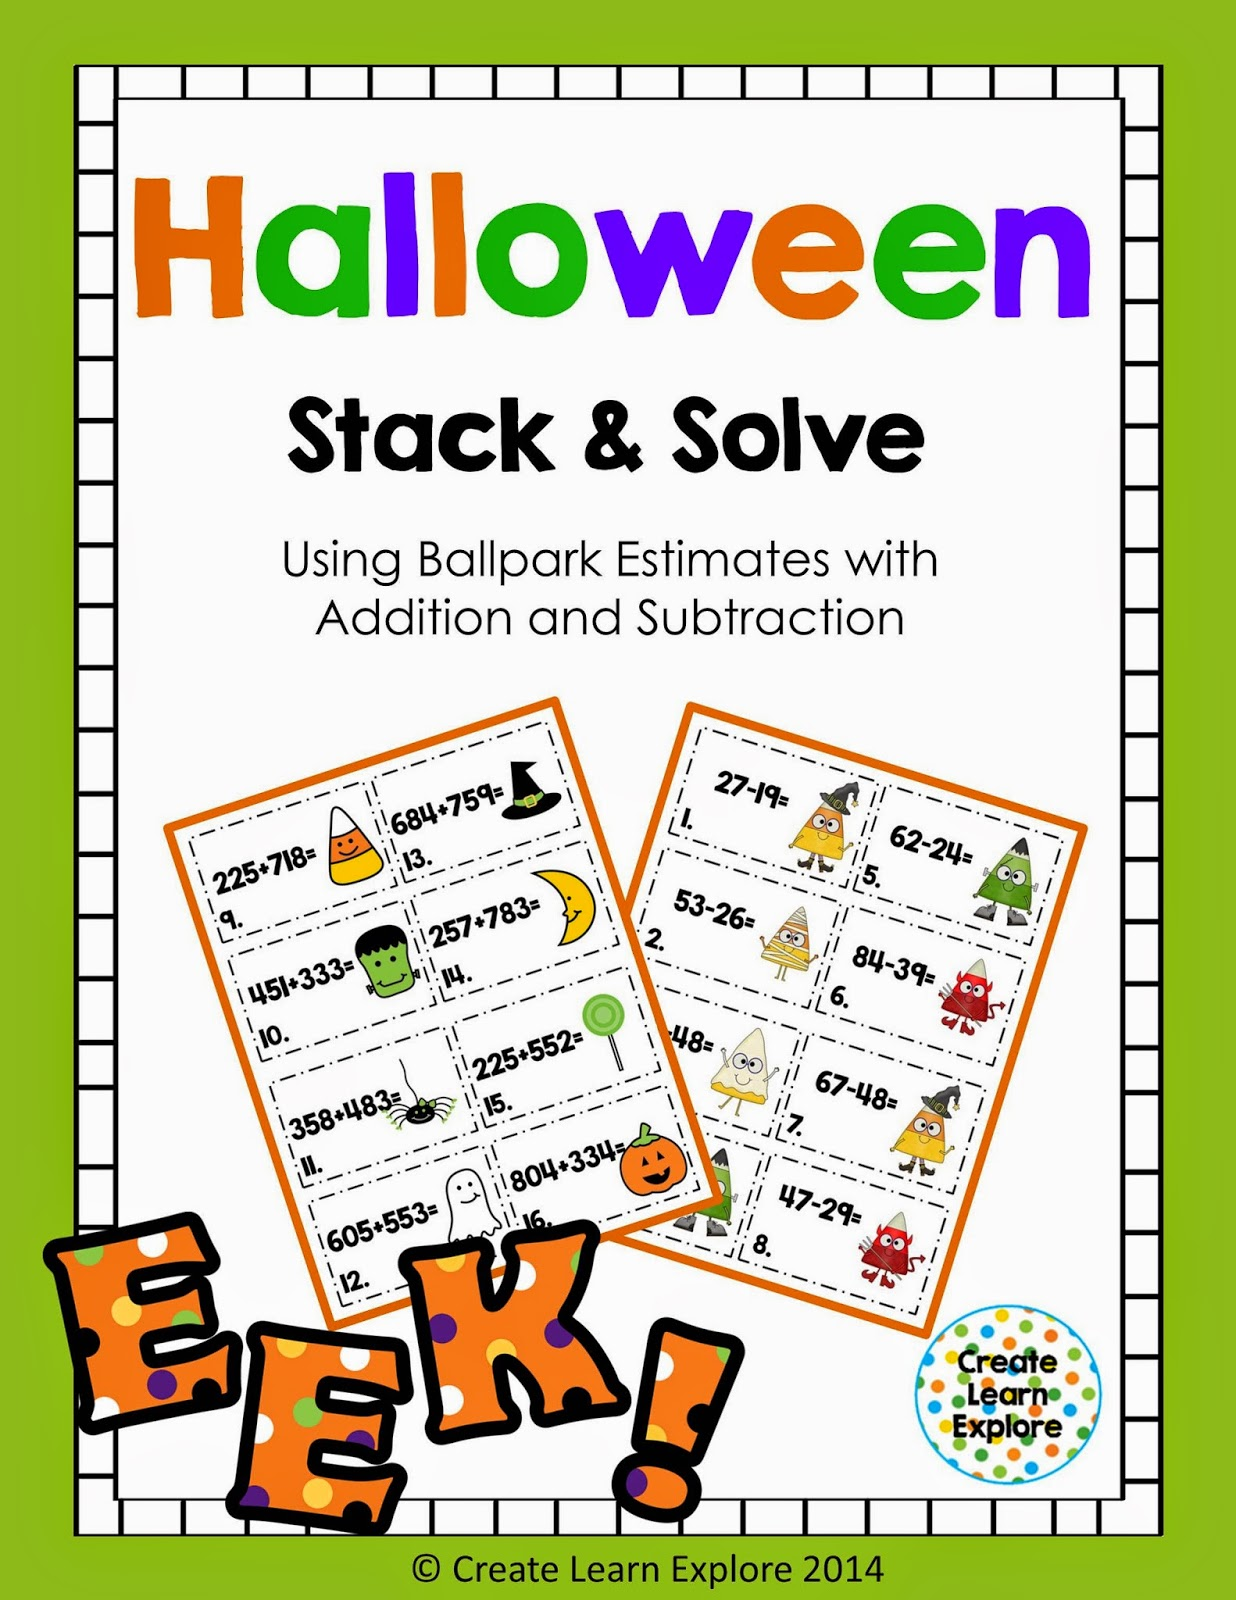 http://www.teacherspayteachers.com/Product/Halloween-Addition-and-Subtraction-with-Ballpark-Estimates-Rounding-1499324